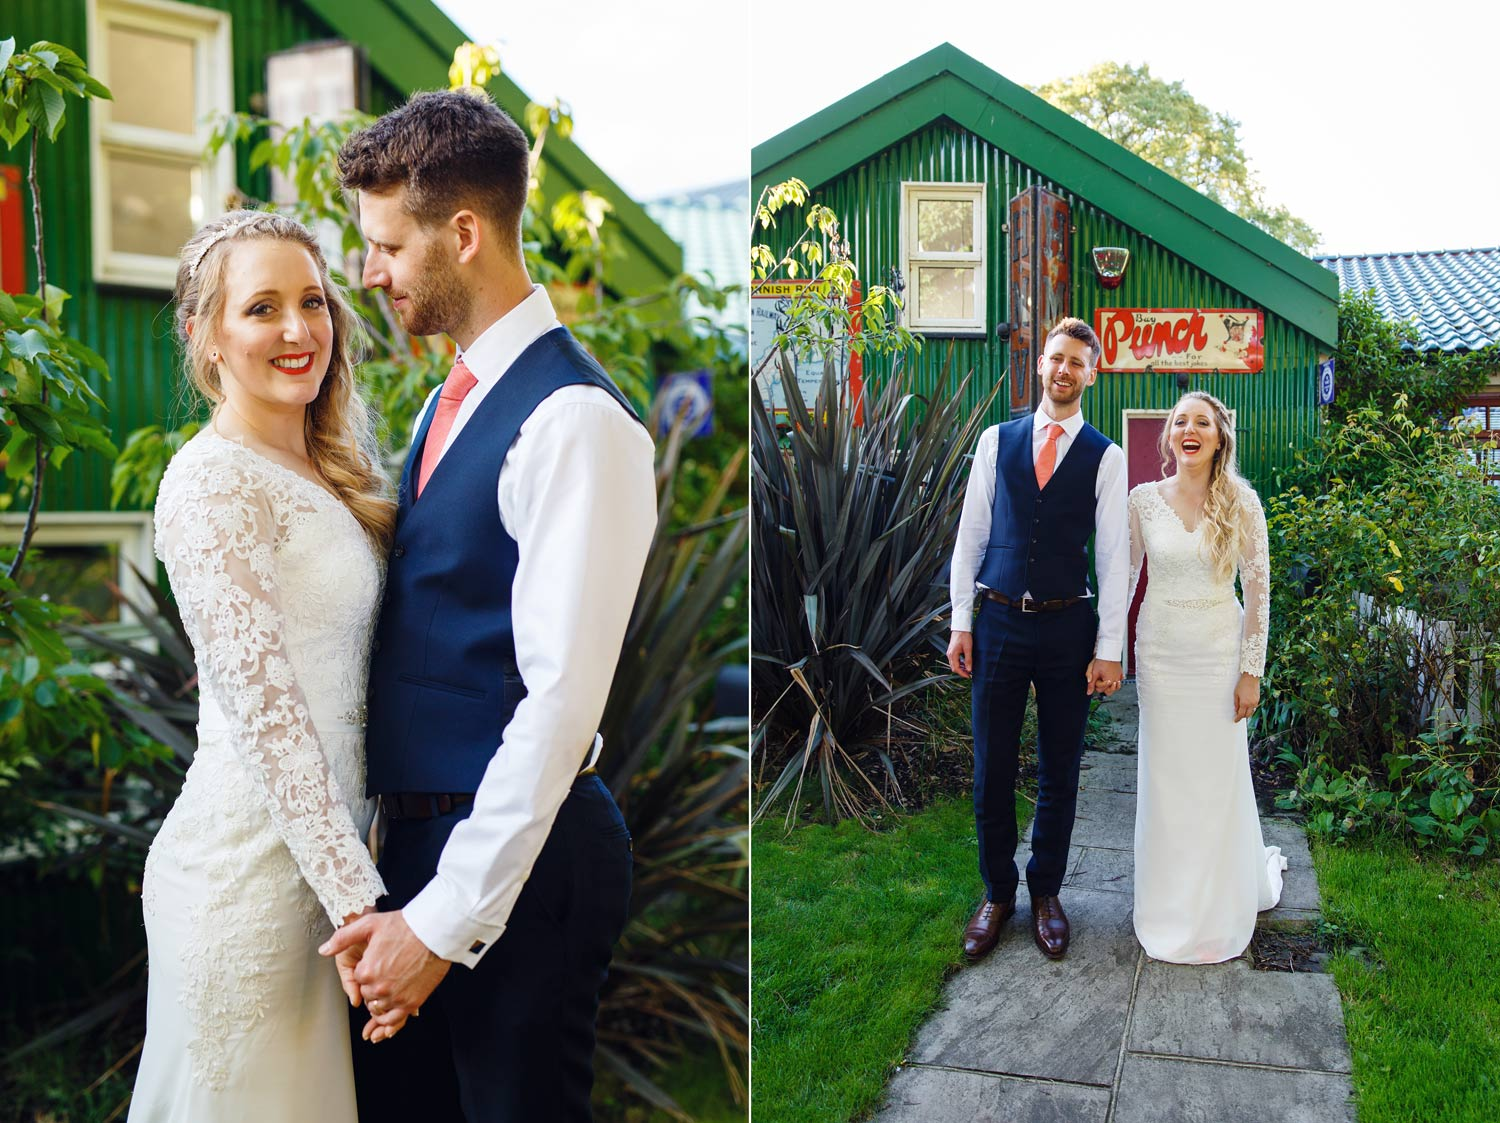 A couple pose for pictures on Eel Pie Island after their wedding ceremony at York House in Twickenham, London.